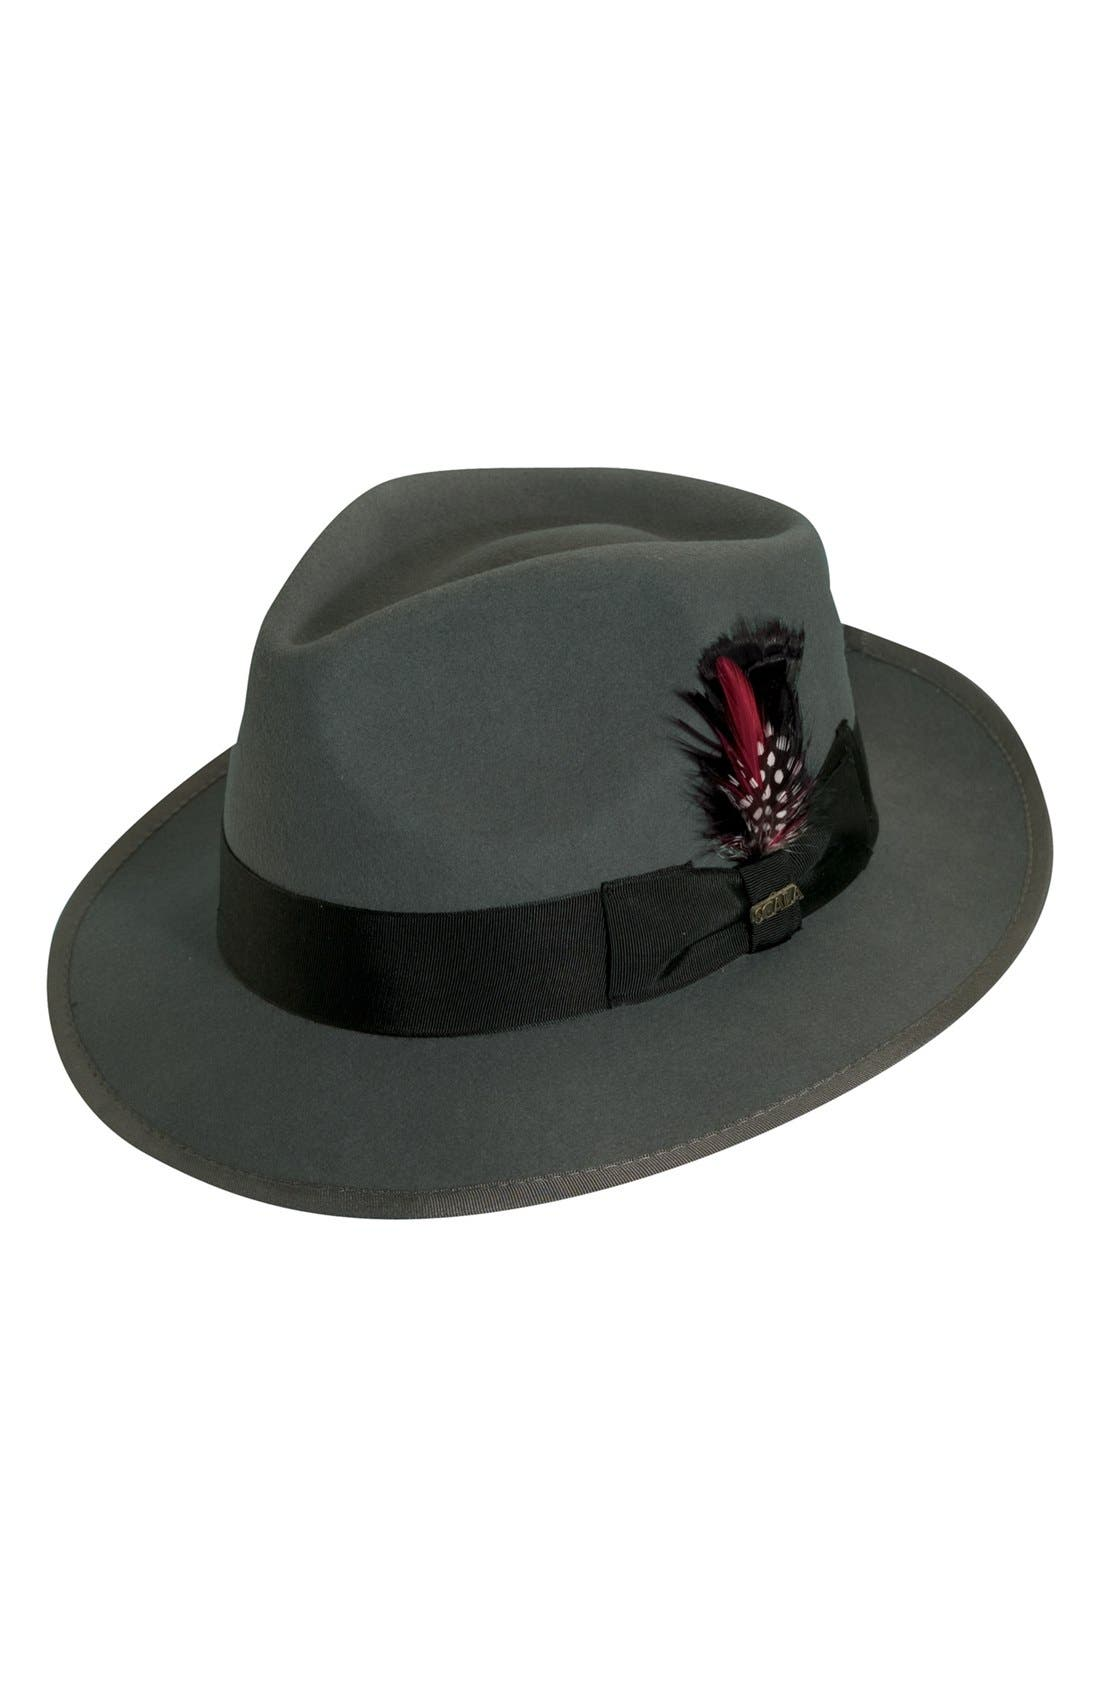 1940s Mens Hats | Fedora, Homburg, Porkpie Hats Mens Scala Classico Wool Felt Snap Brim Hat - Grey $51.00 AT vintagedancer.com